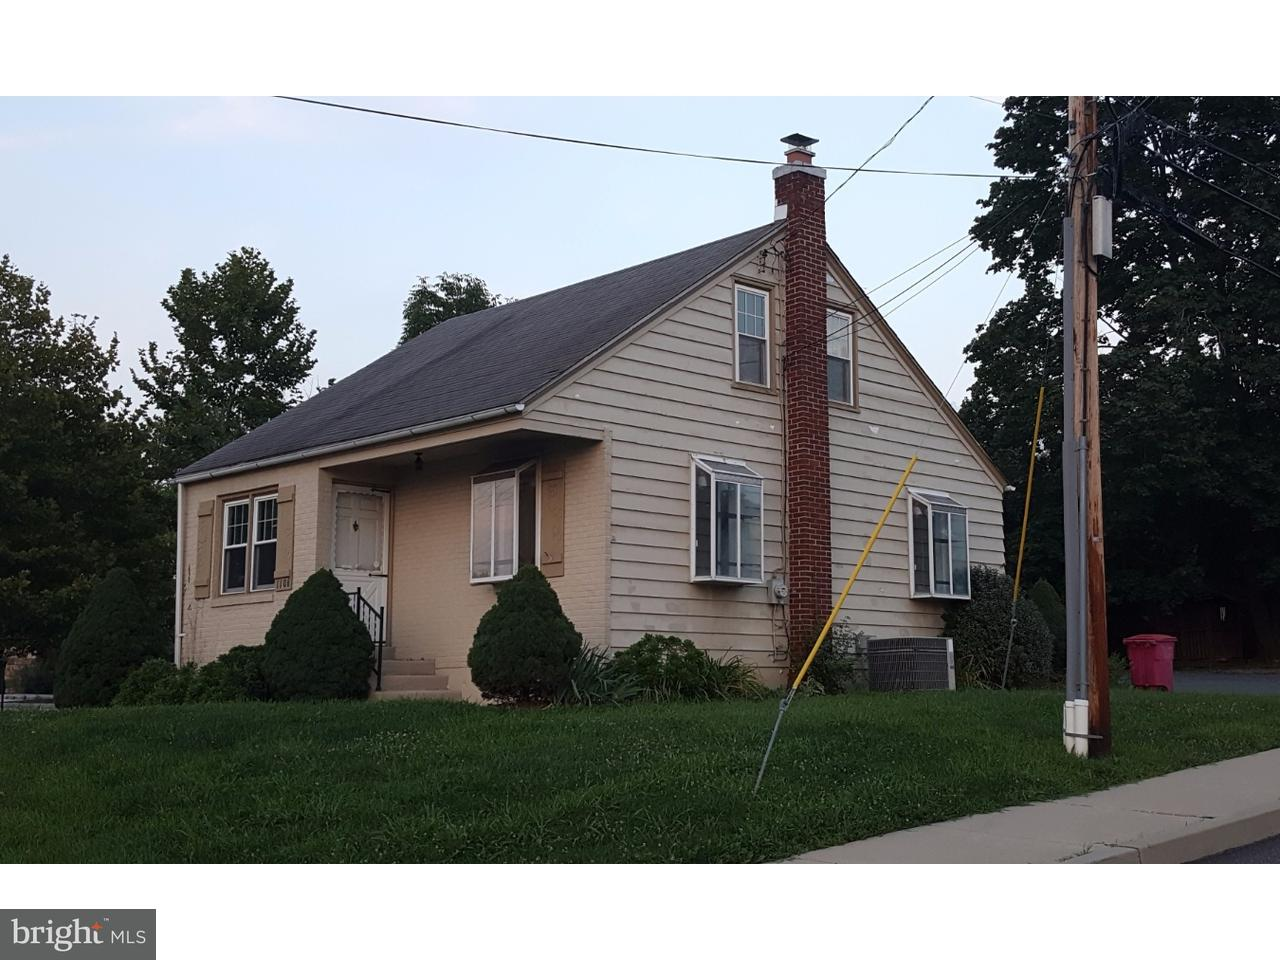 Single Family Home for Sale at 1106 PAWLINGS Road Audubon, Pennsylvania 19403 United States